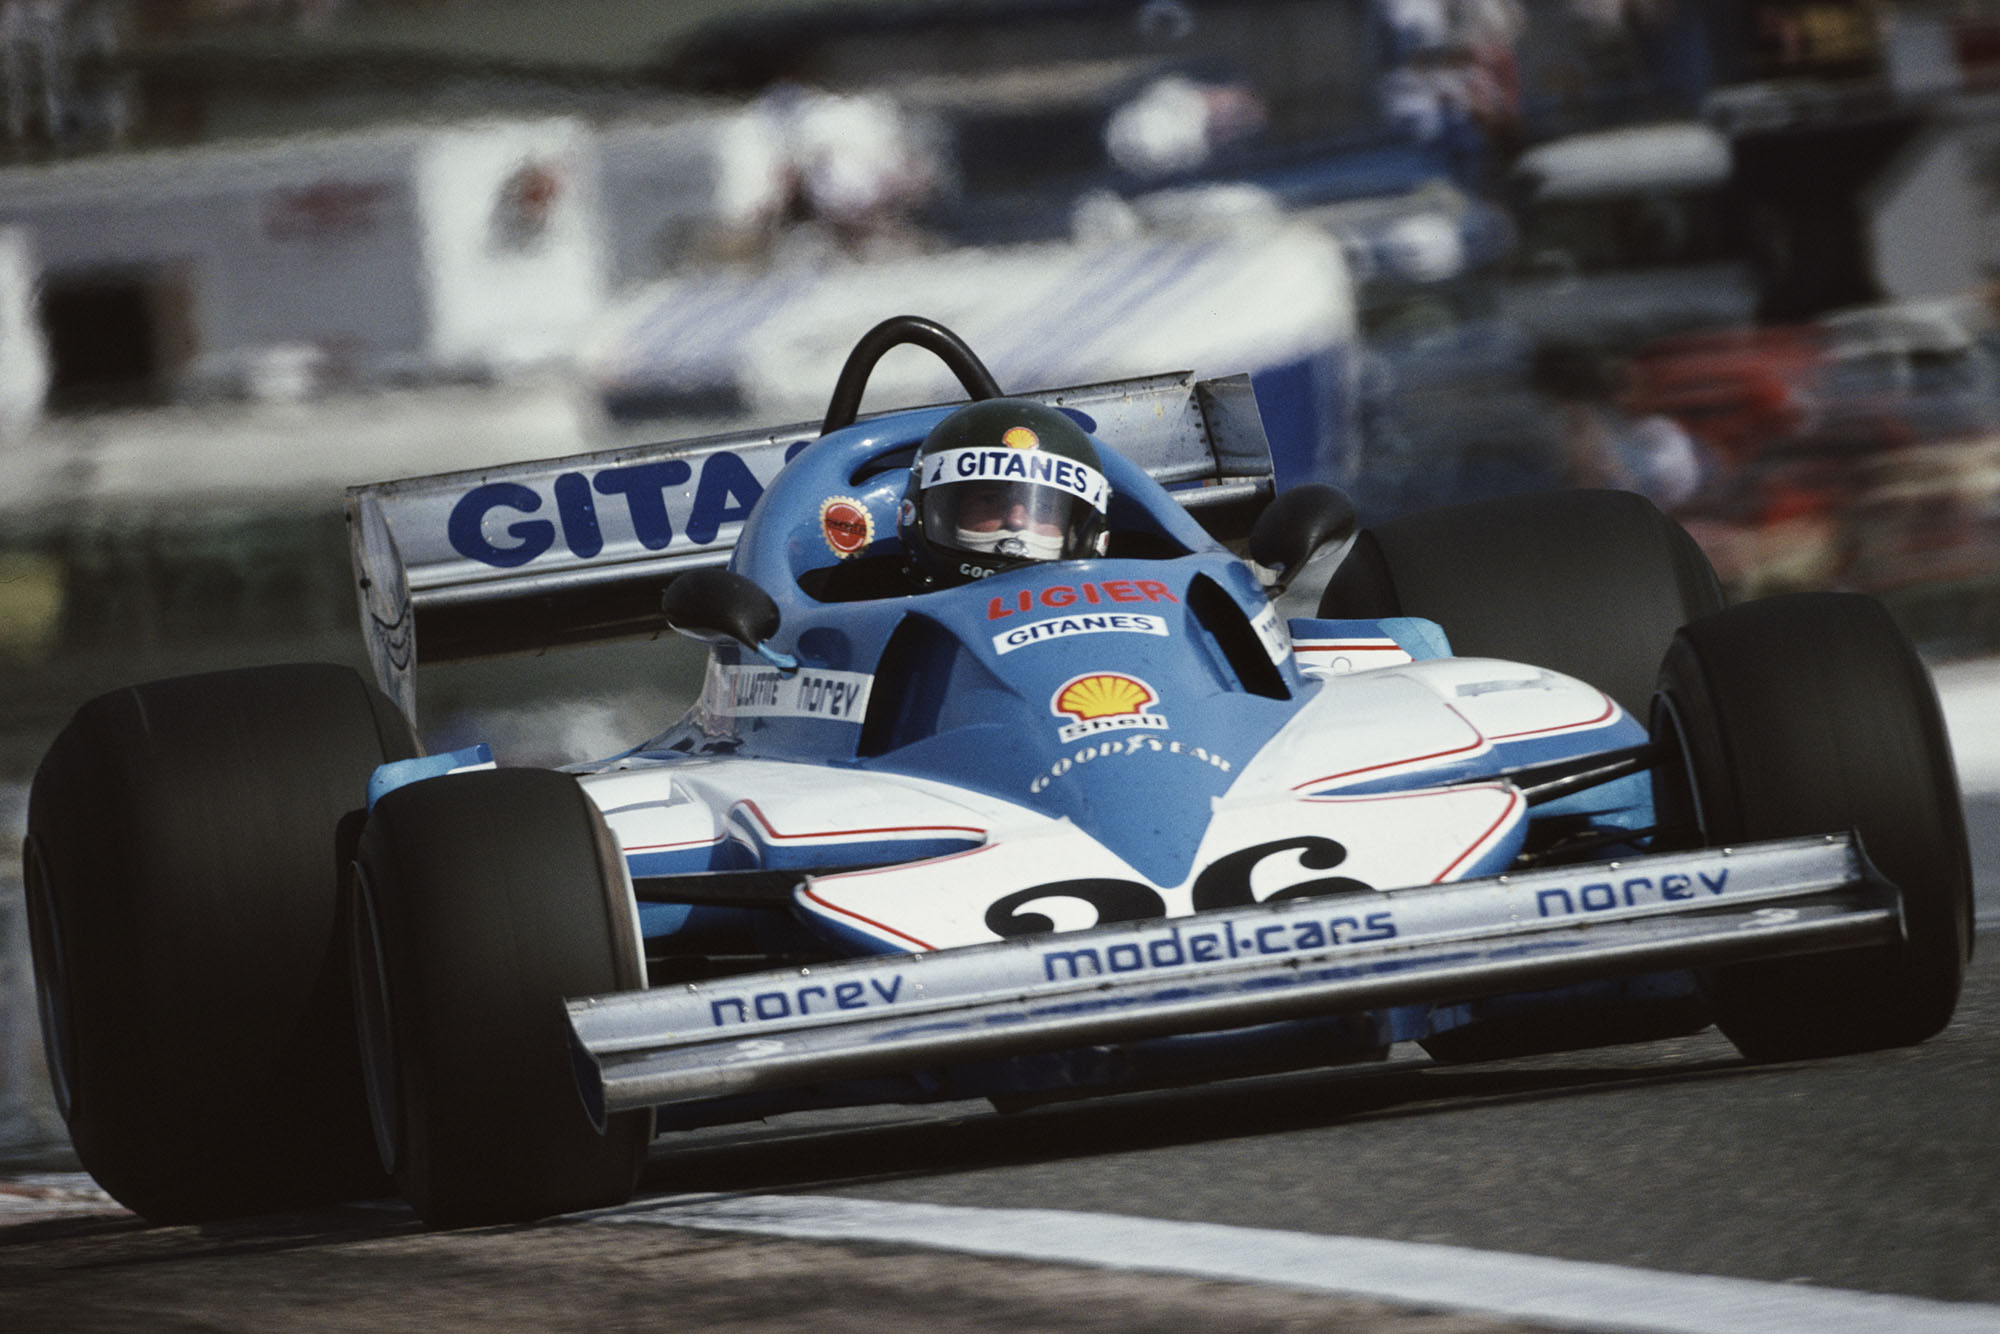 Jacques Laffite (Ligier) at the 1977 Spanish Grand Prix, Jarama.